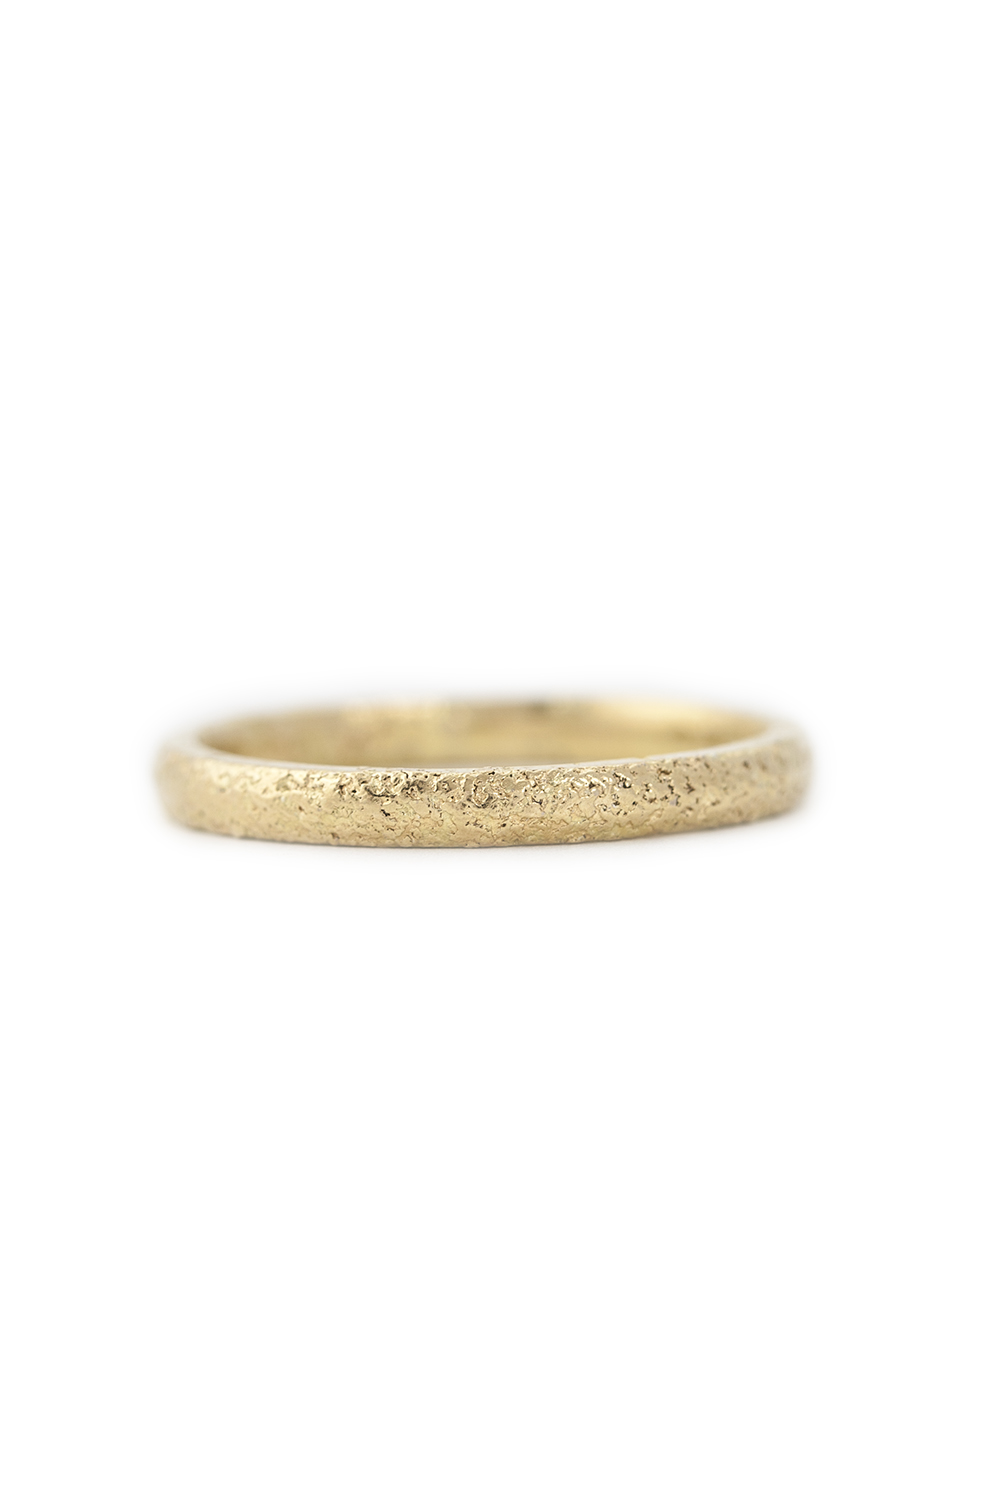 Gold dust fused ring in yellow gold, £660